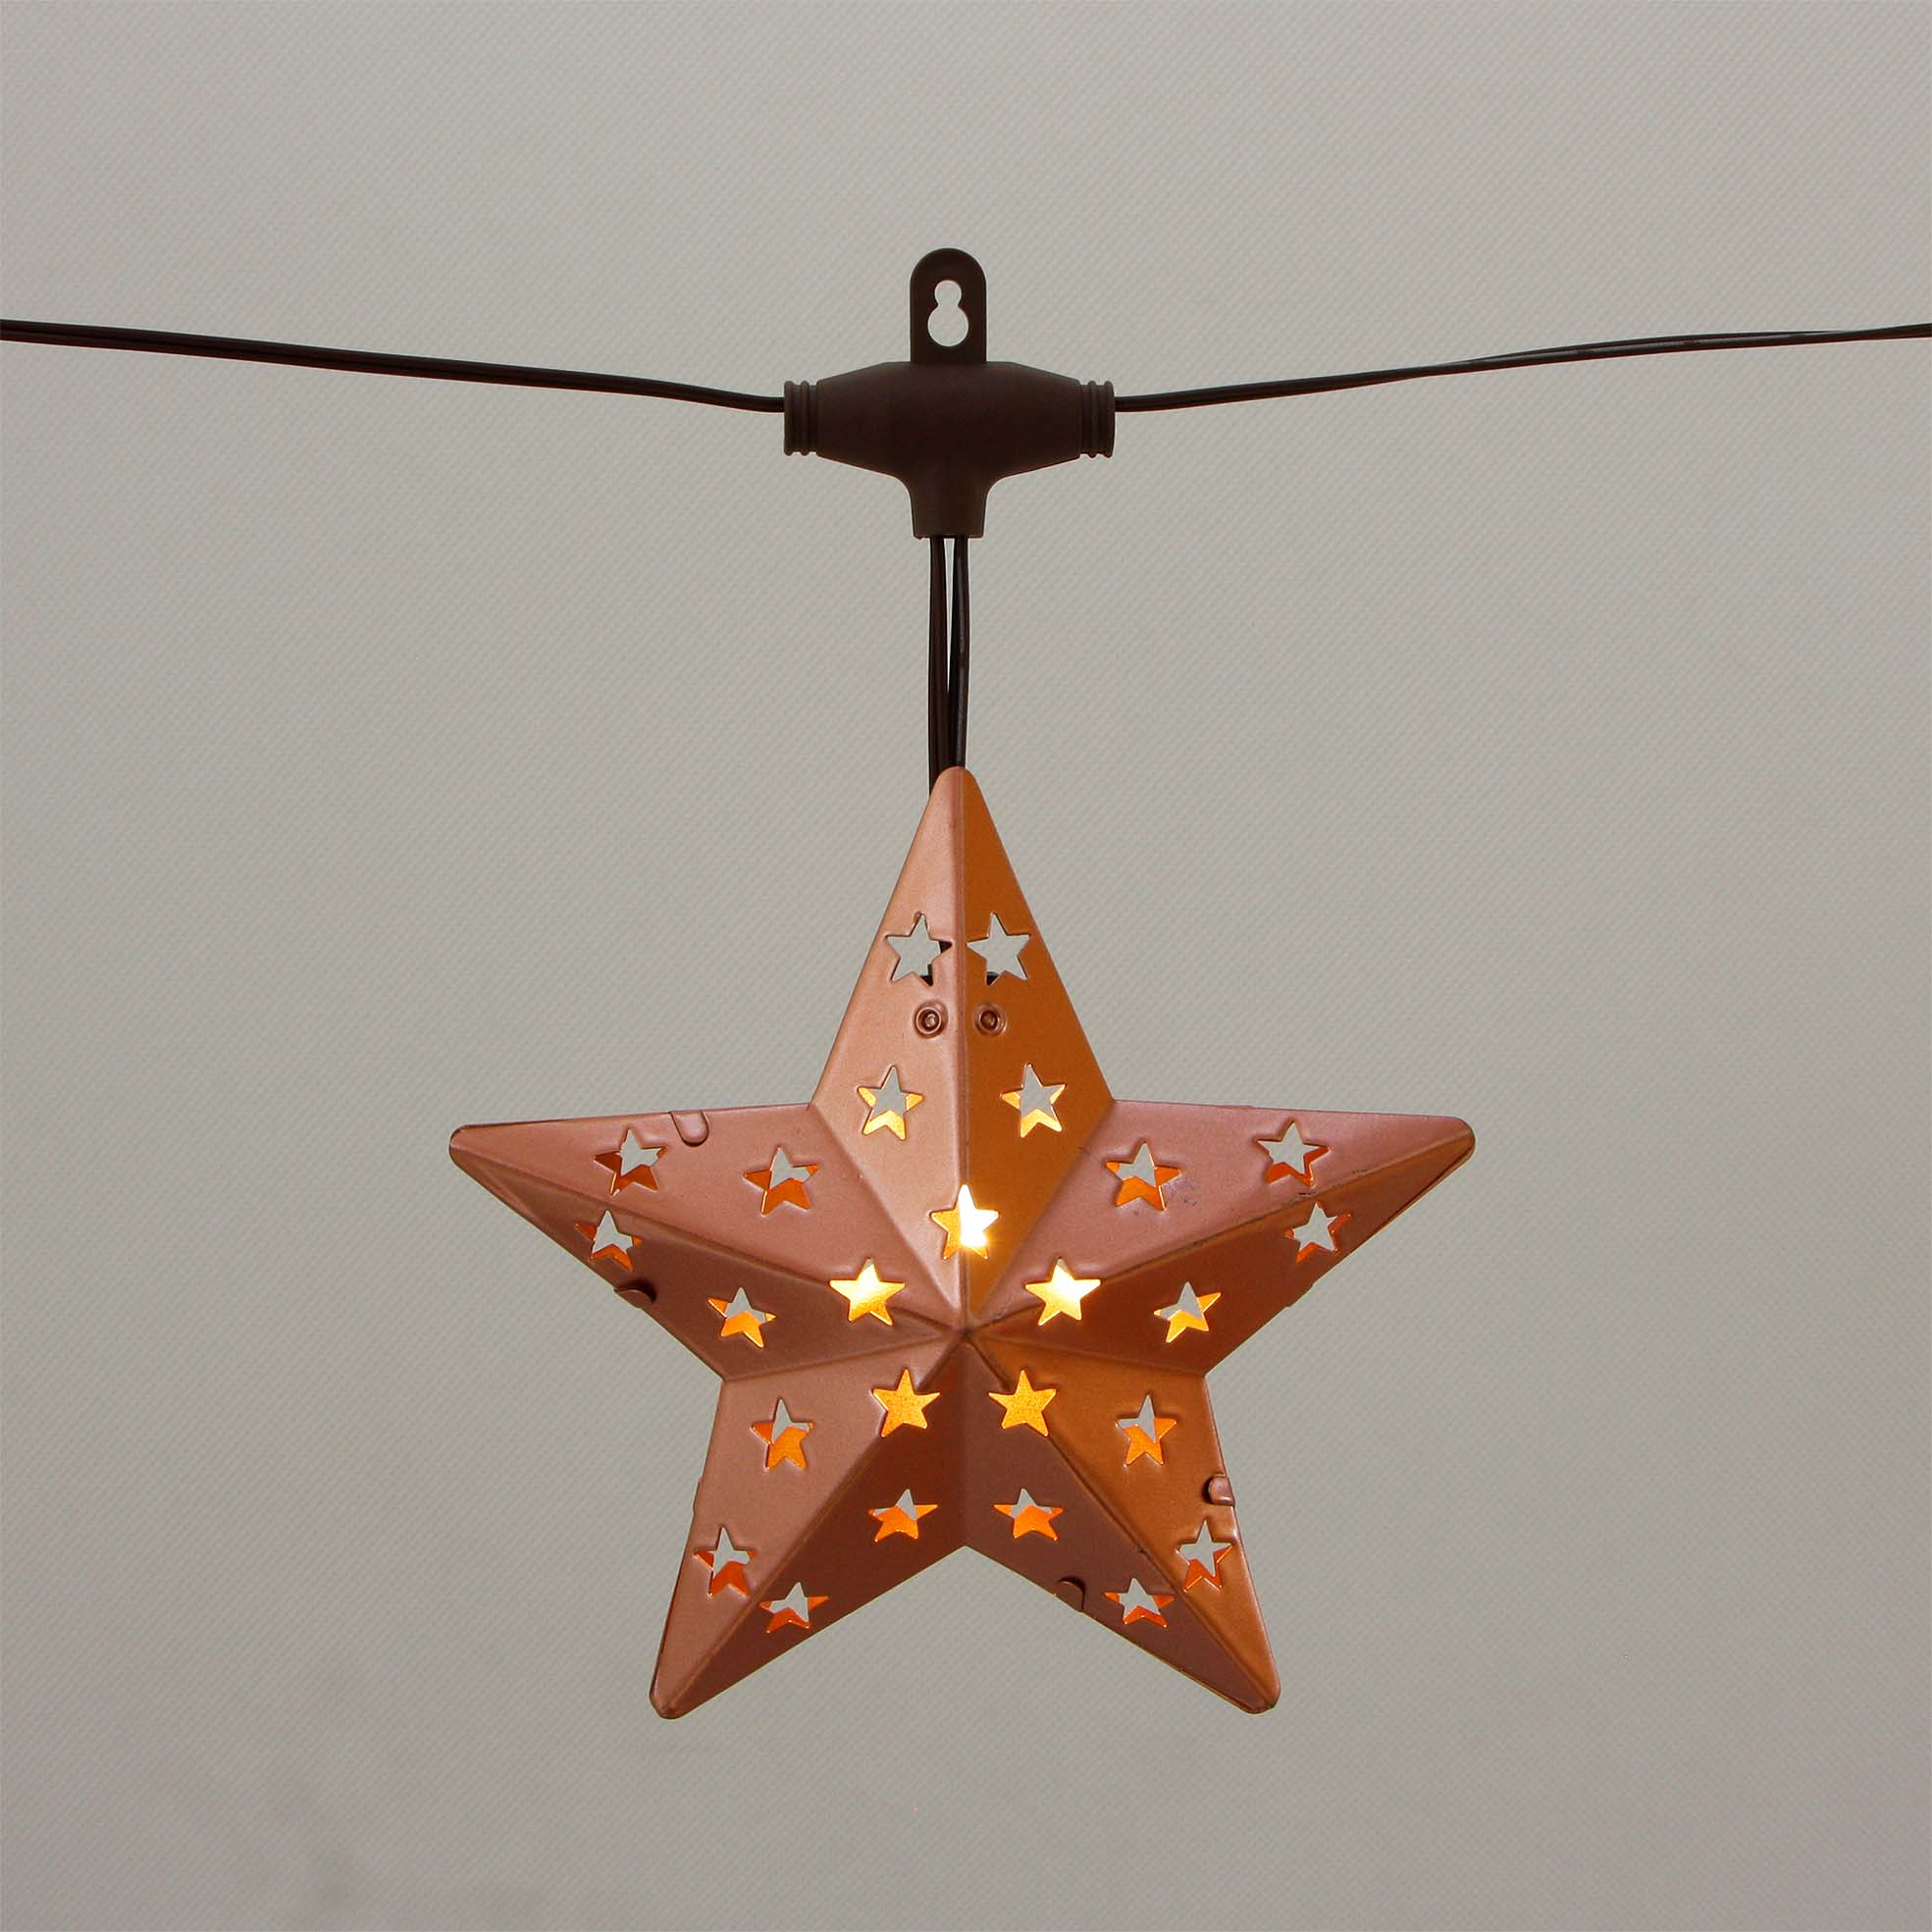 Corrugated Pre_Painted Steel Coil Christmas Light Decorations -